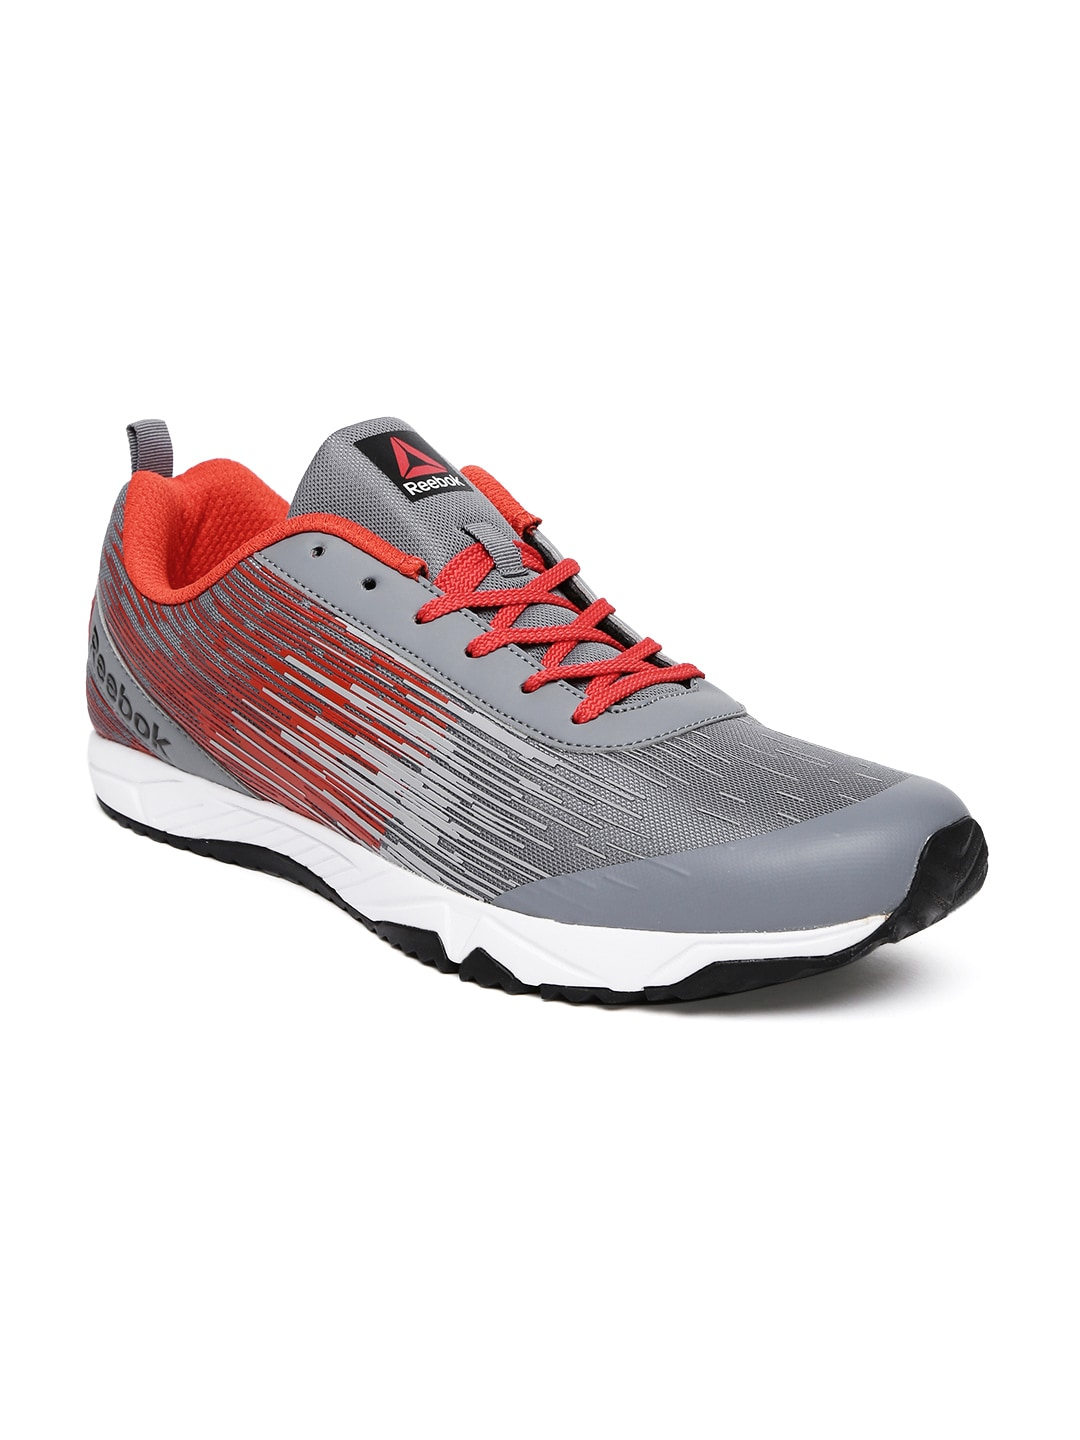 b965164642b175 Gym Shoes - Buy Trendy Gym Shoes For Men   Women Online